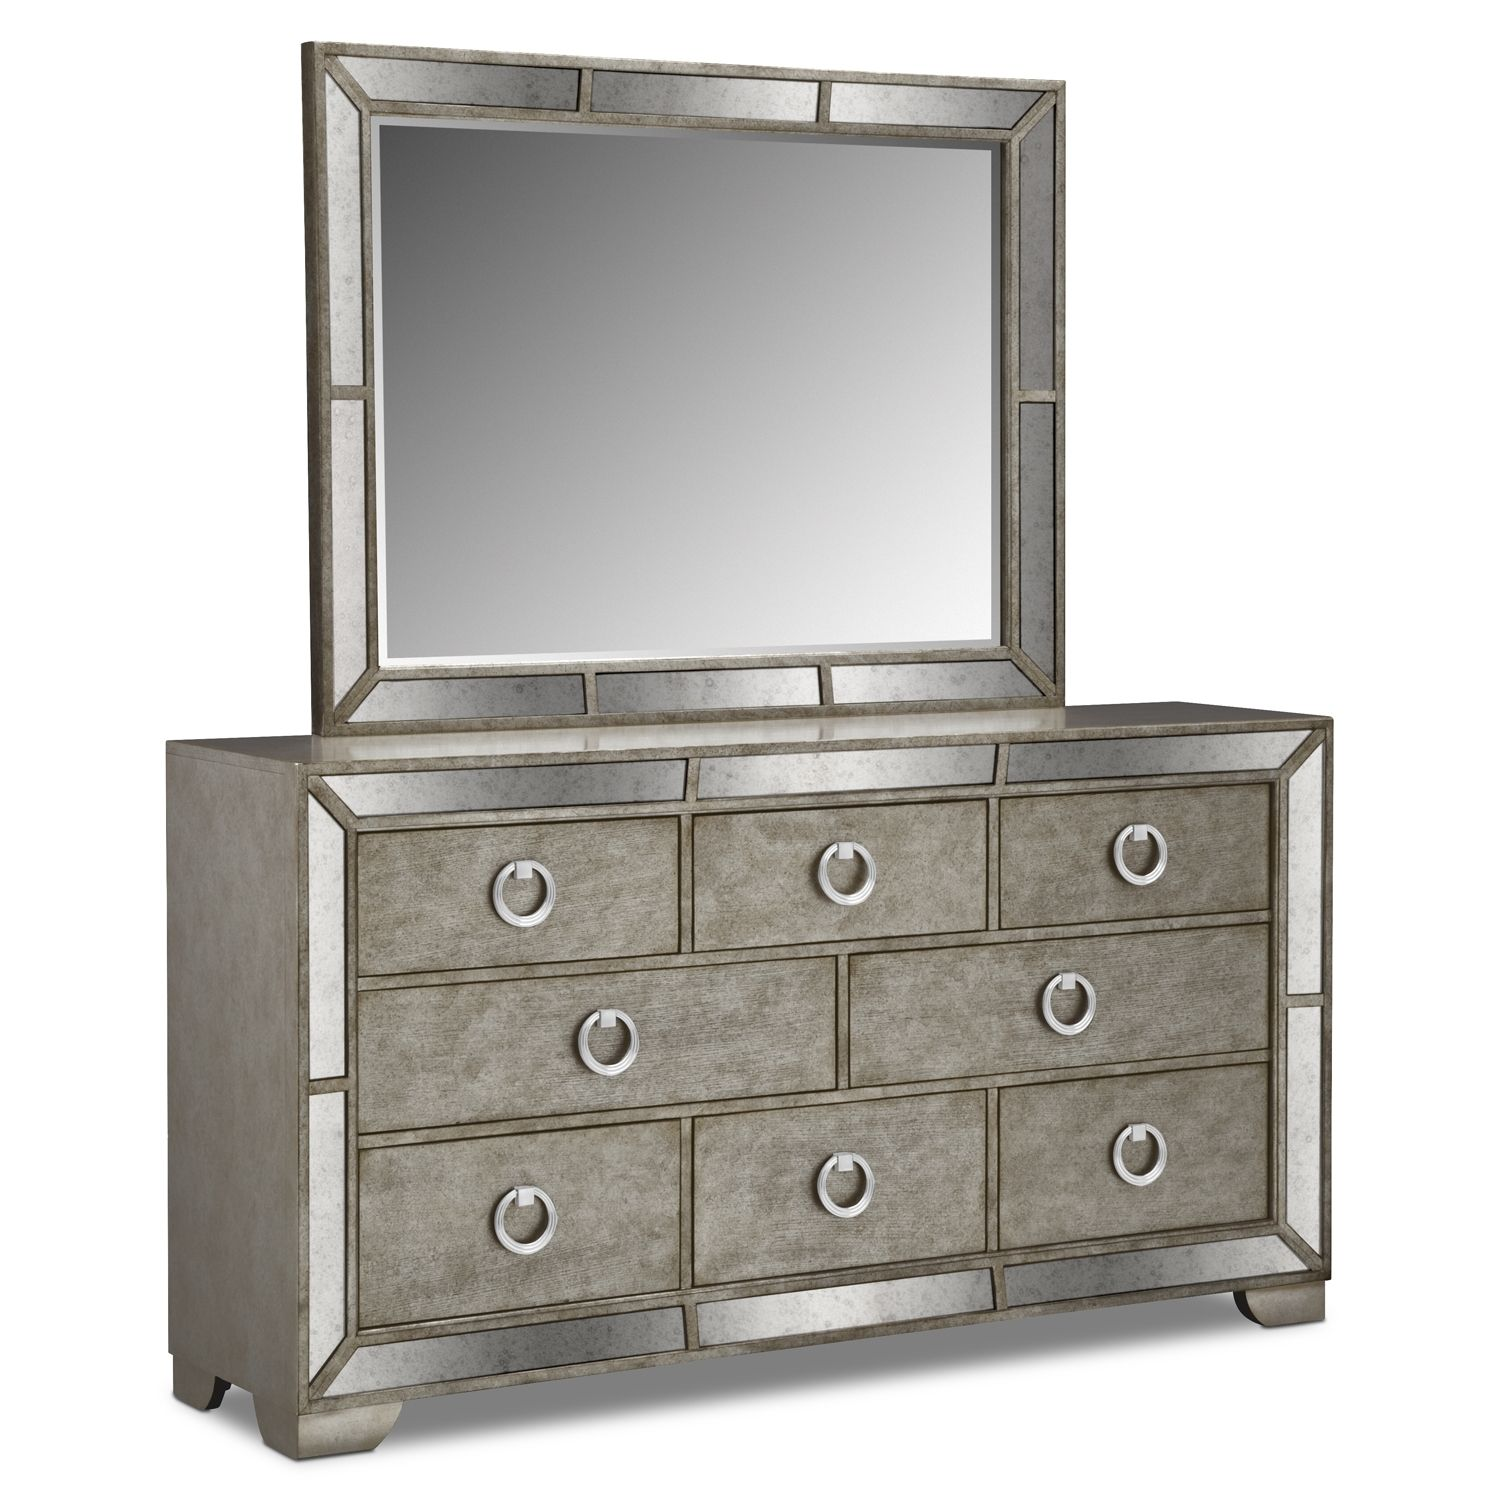 Mirror Dressers Use Material Hardwood Solids And Canted Bracket Feet